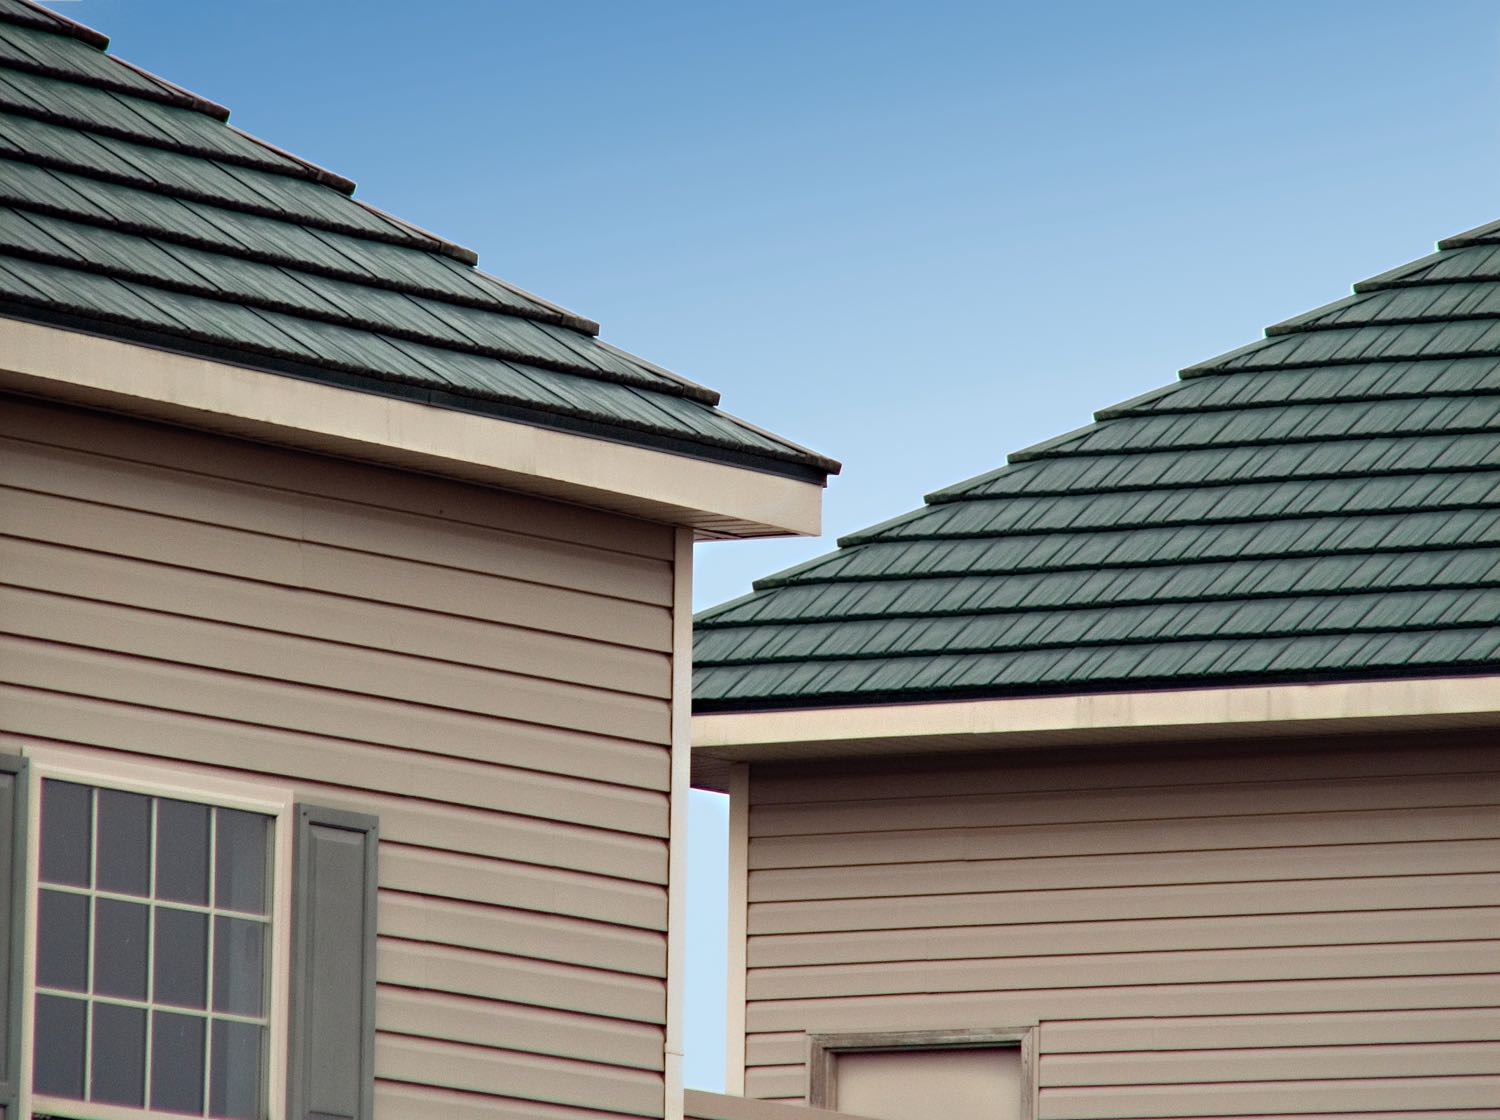 Rustic shingle metal roofs by classic metal roofing systems for Roof color